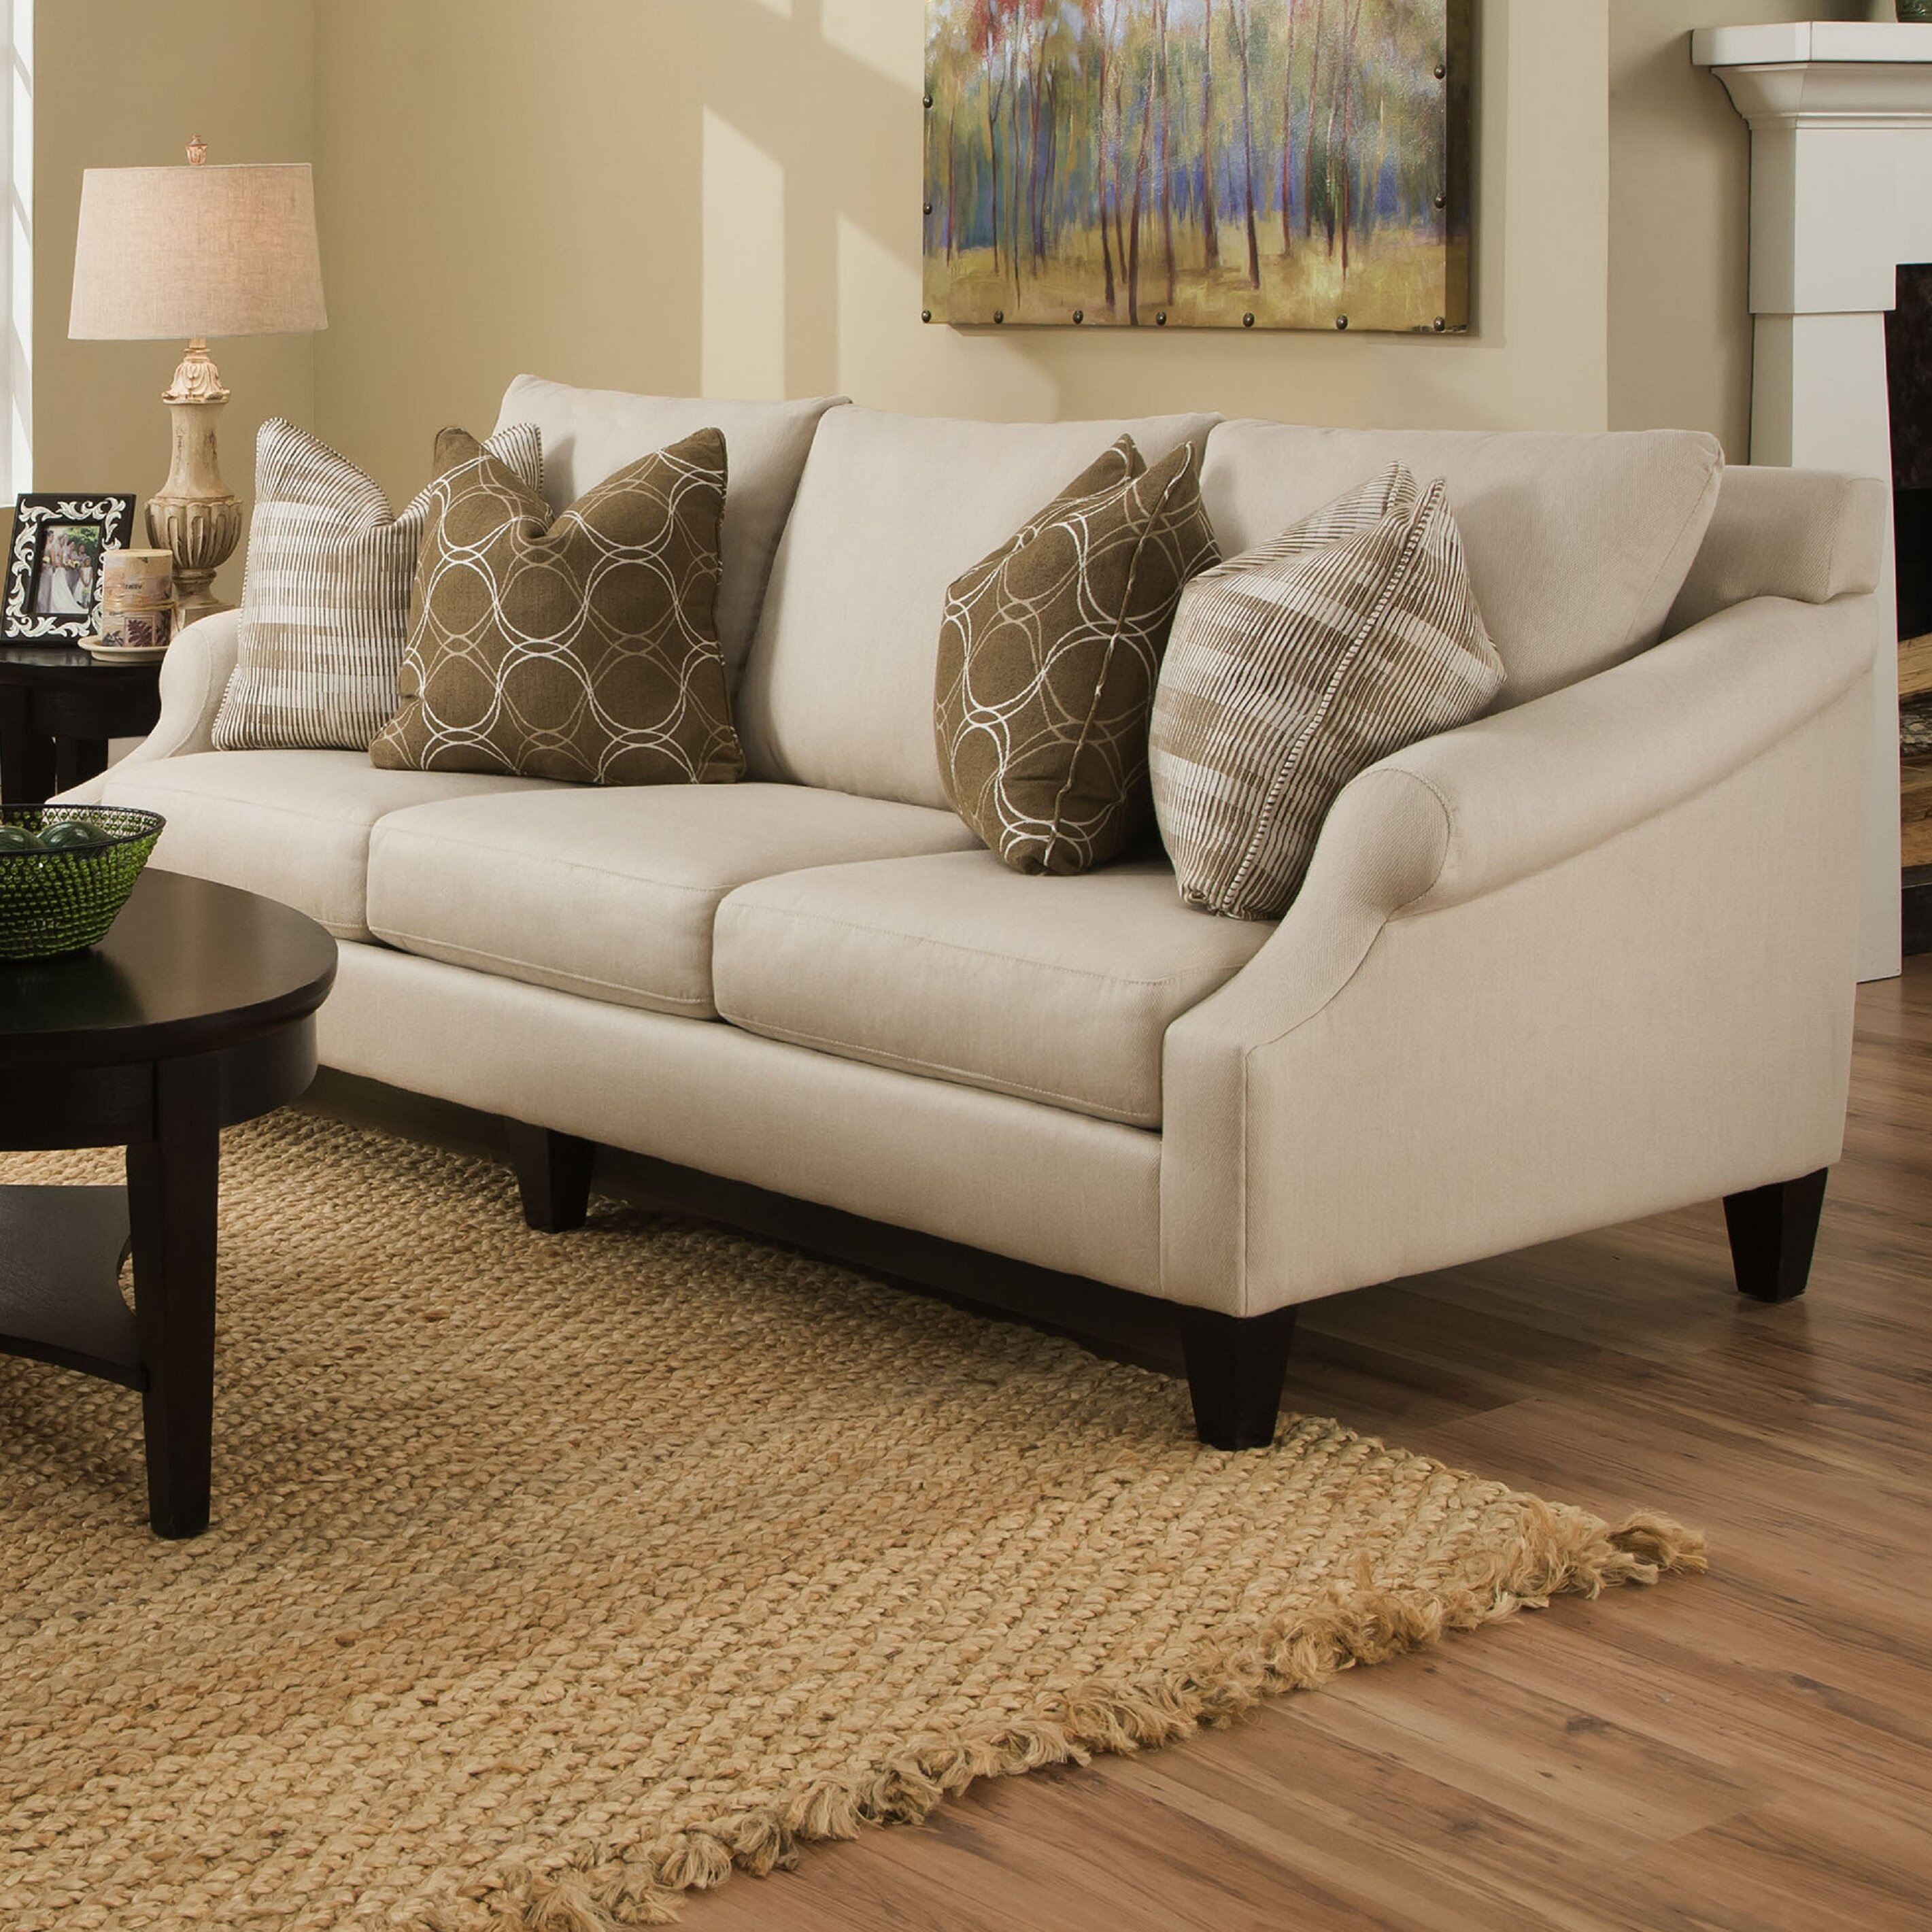 Molly Extra-Long Pique Flax Sofa | Wayfair